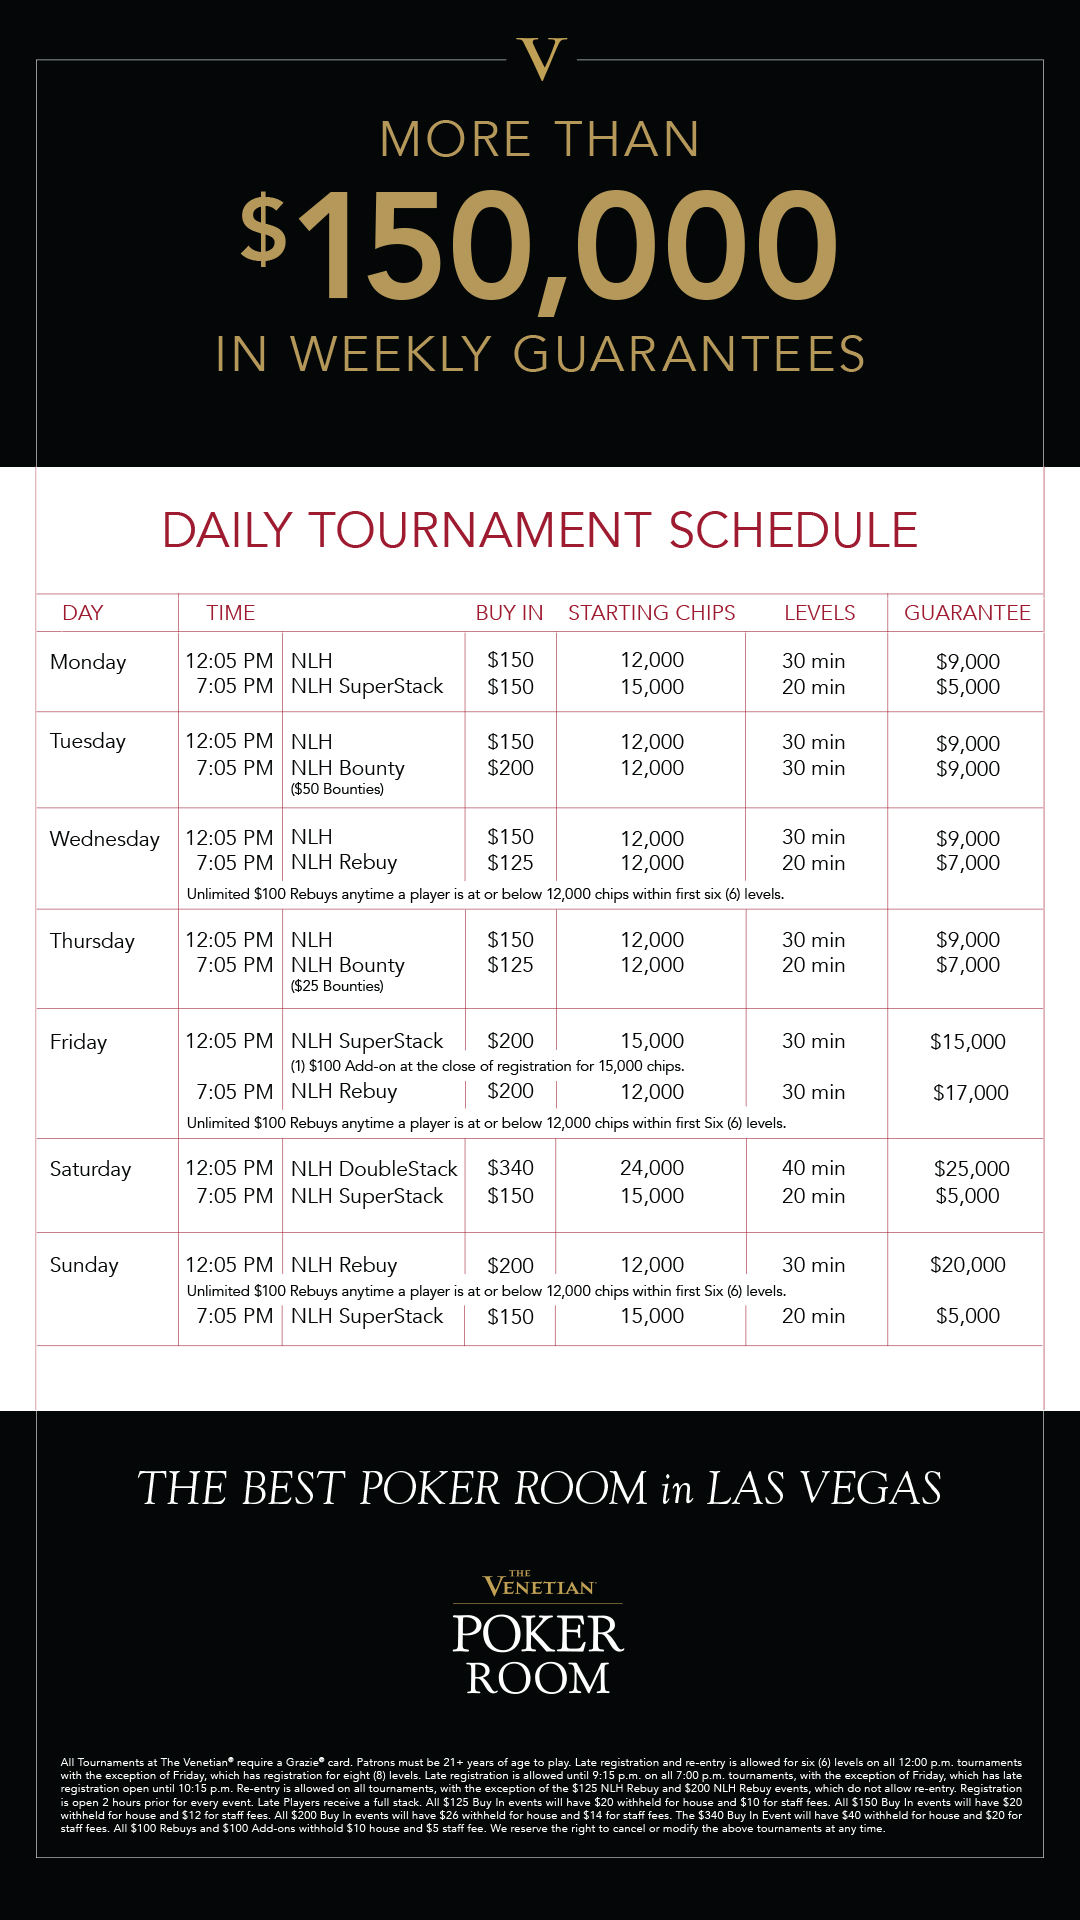 Encore poker room tournament schedule